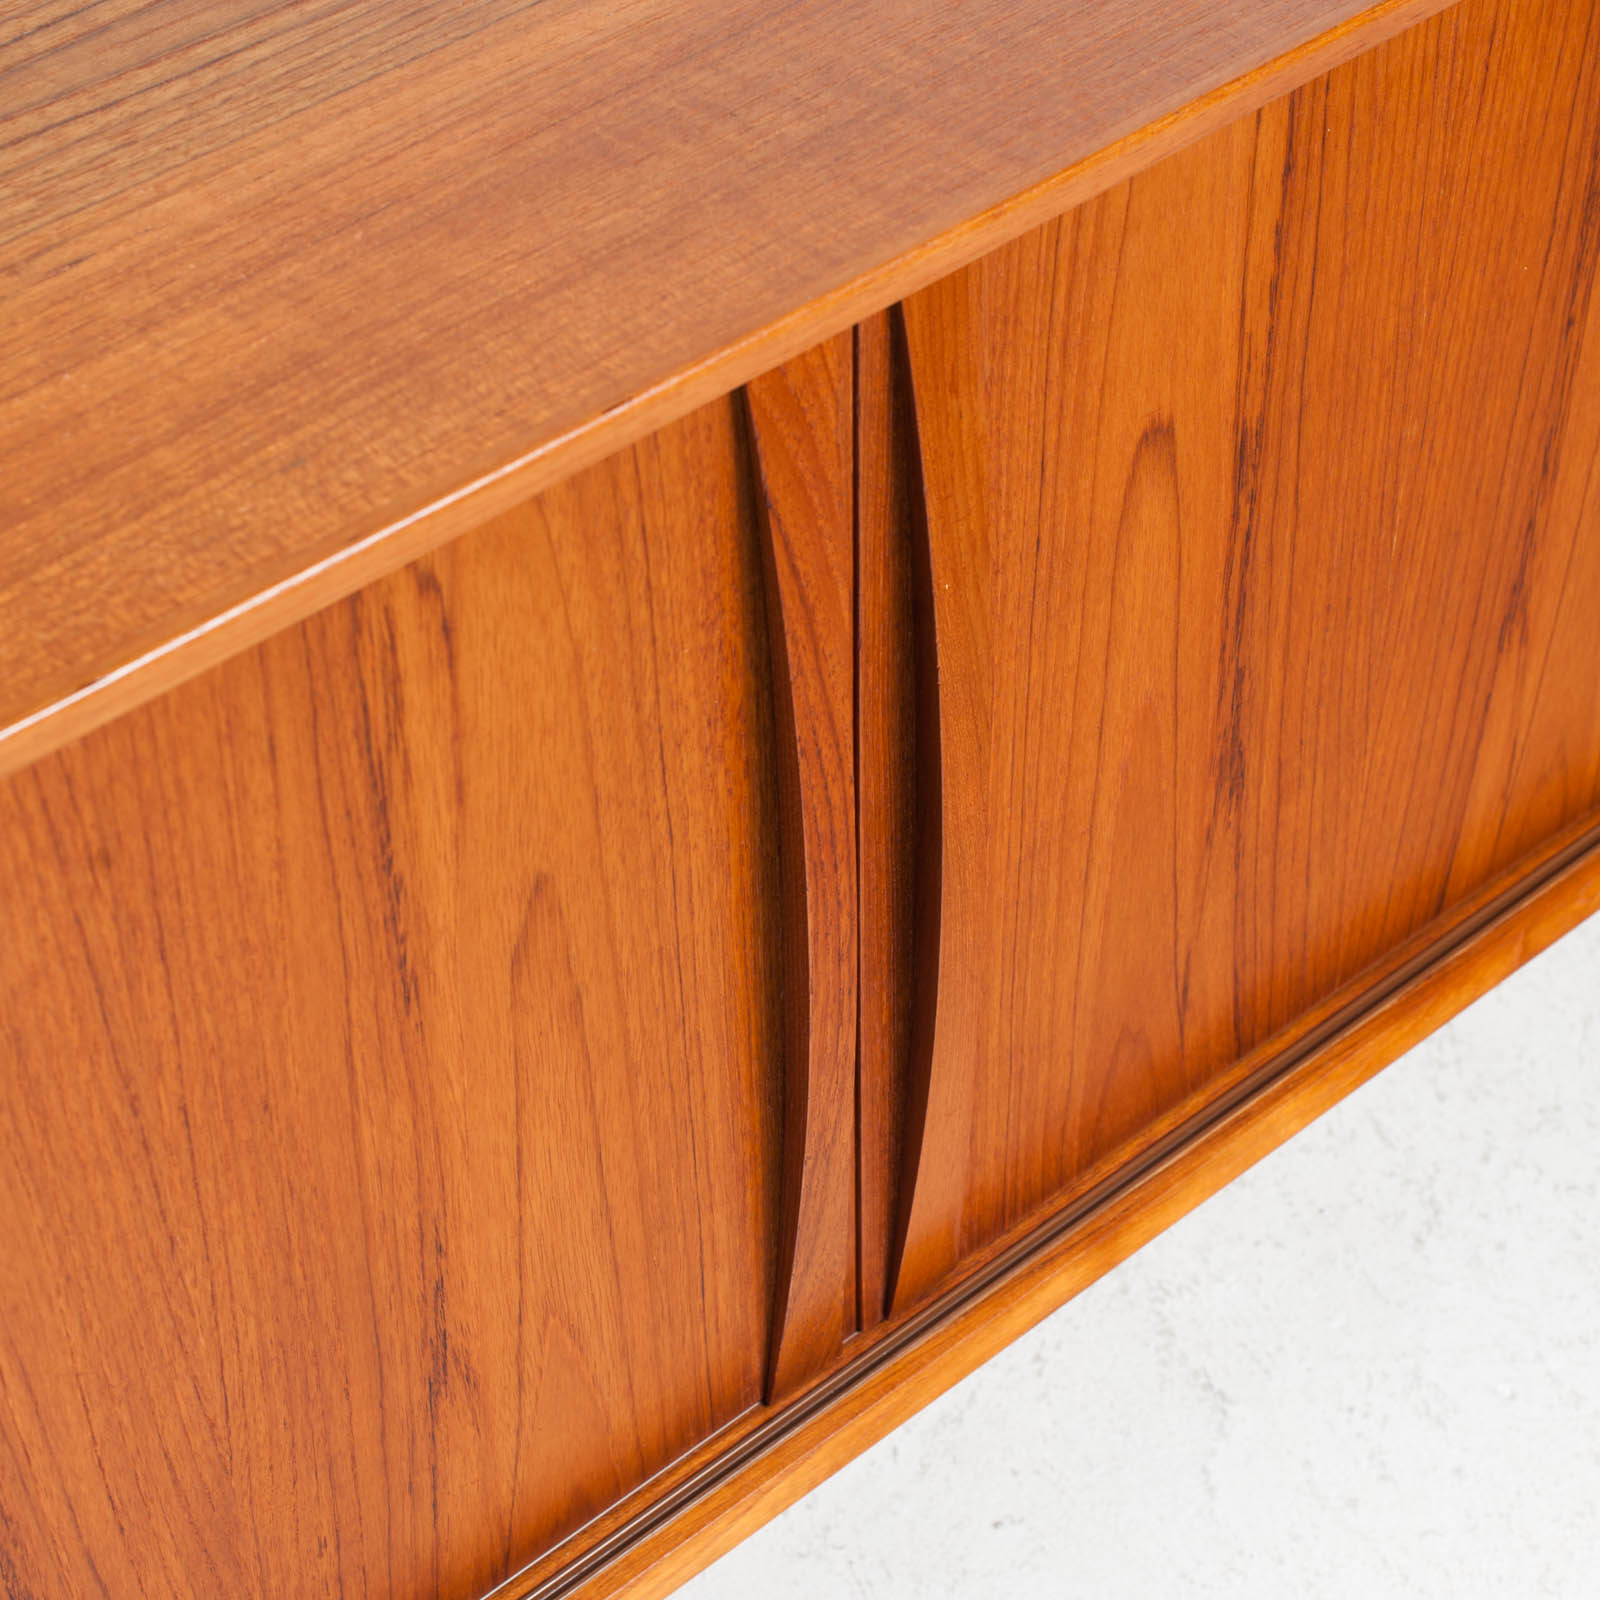 Sideboard In Teak With Two Sliding Drawers 1960s Denmark 07